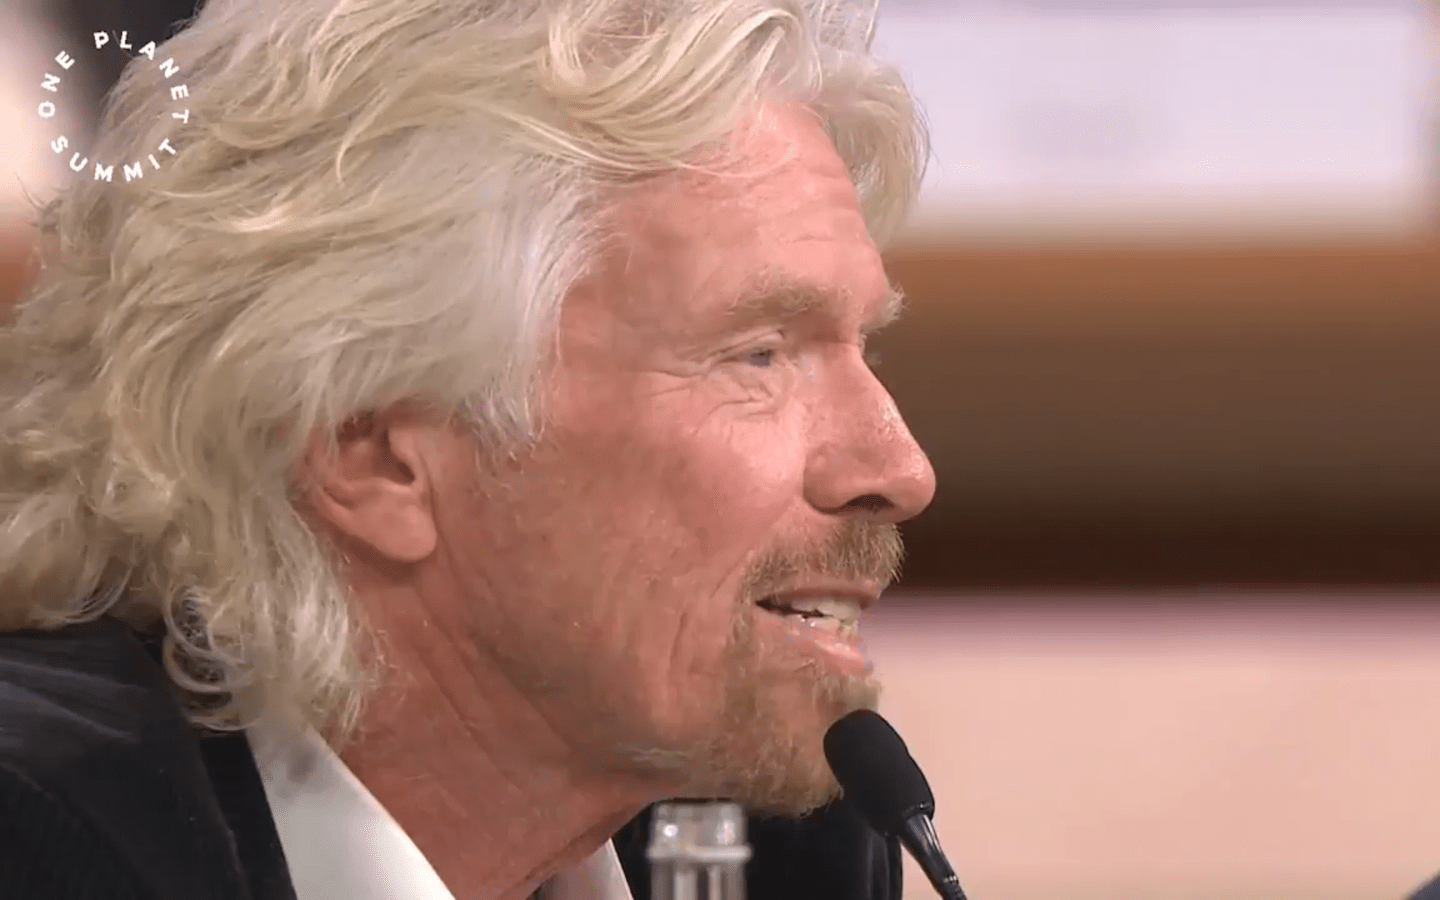 Richard Branson speaking into a microphone at the One Planet Summit